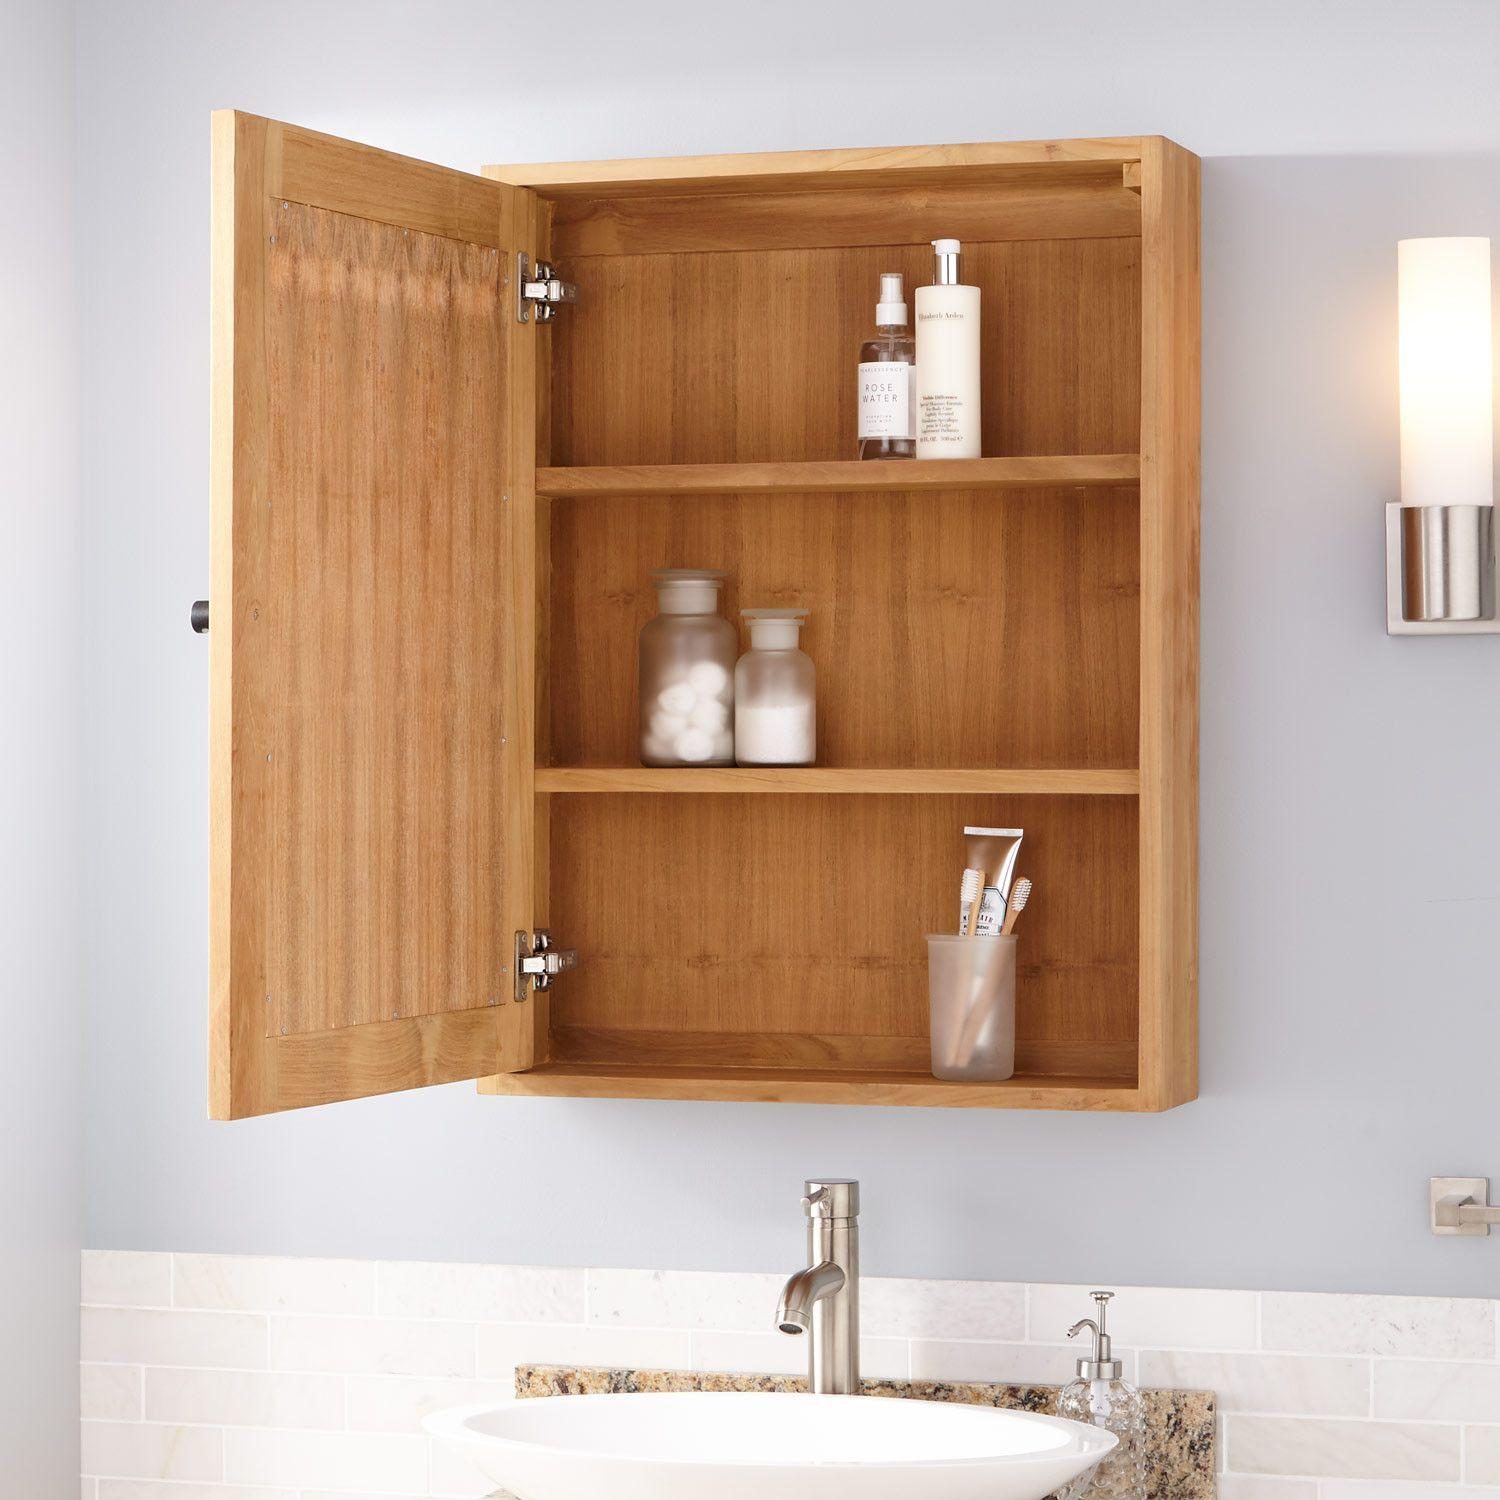 24 Osa Teak Medicine Cabinet Natural Teak Bathroom